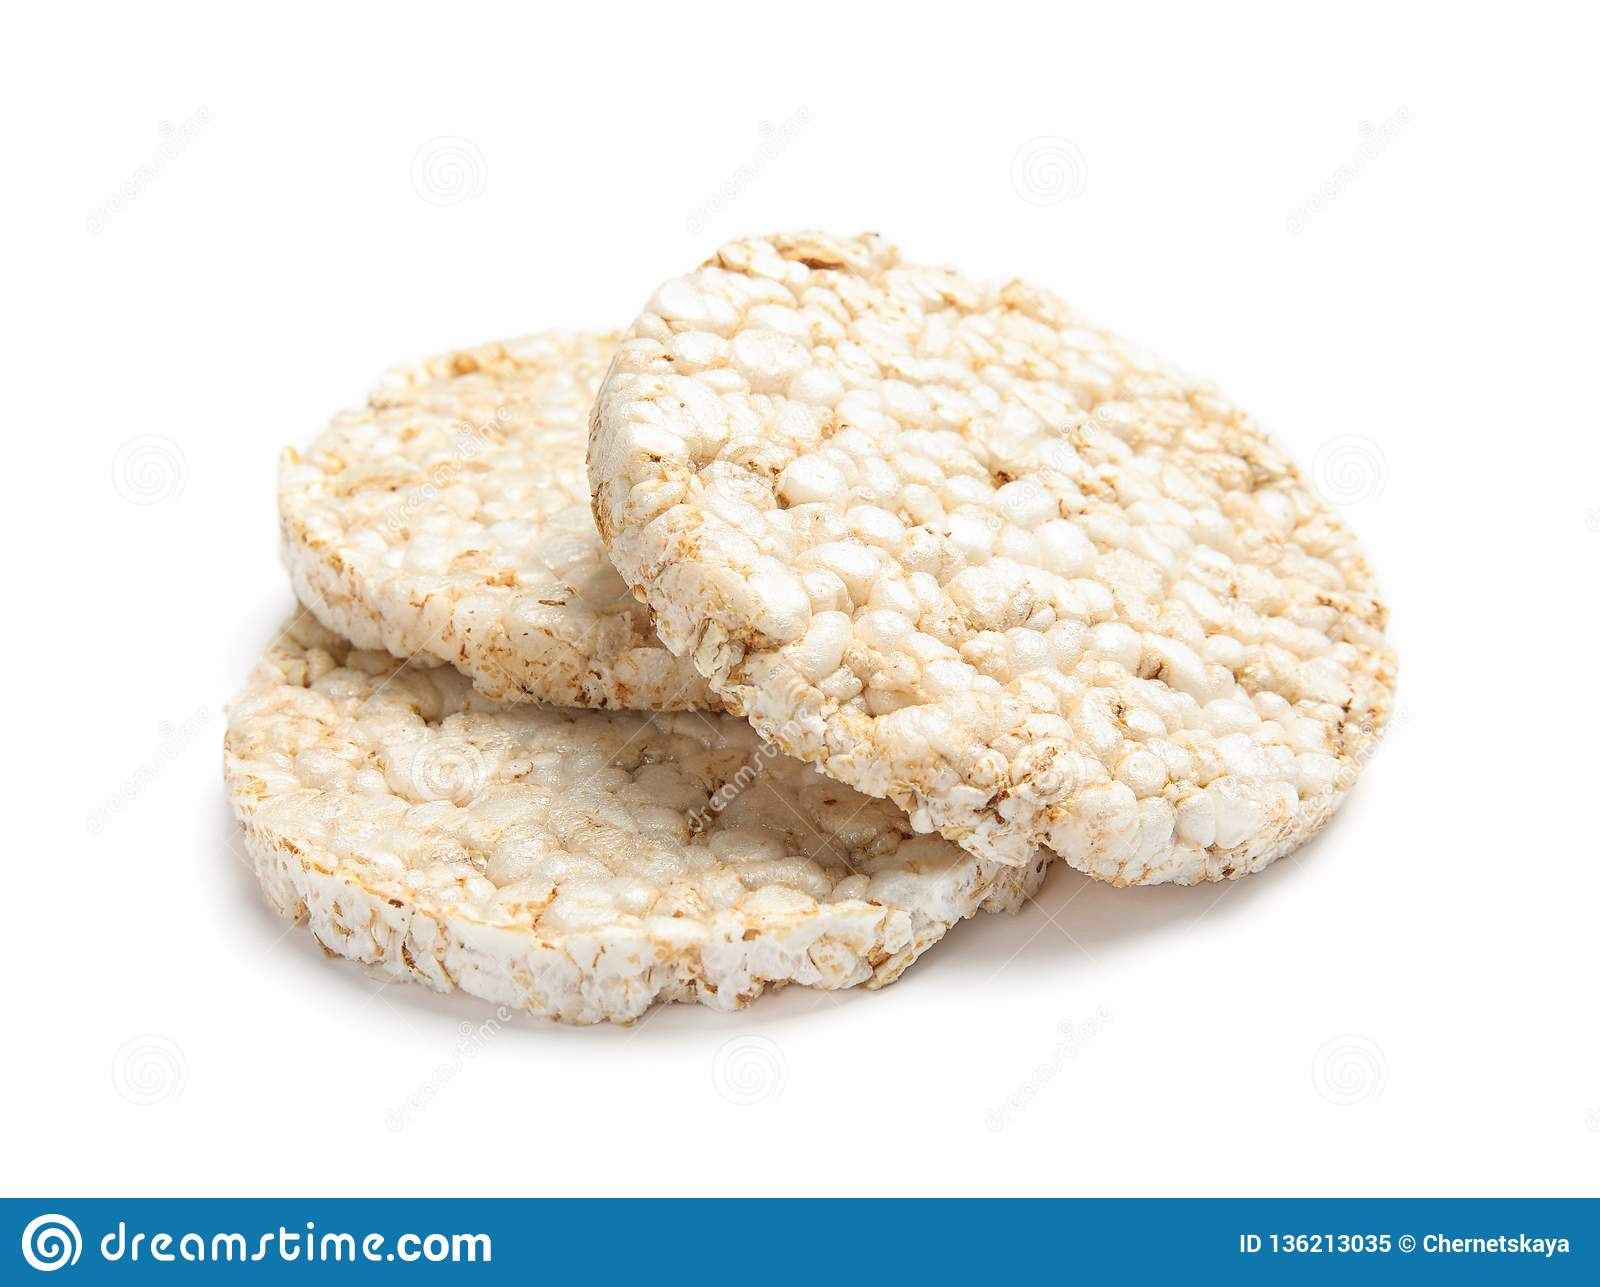 Crunchy rice cakes on white background.